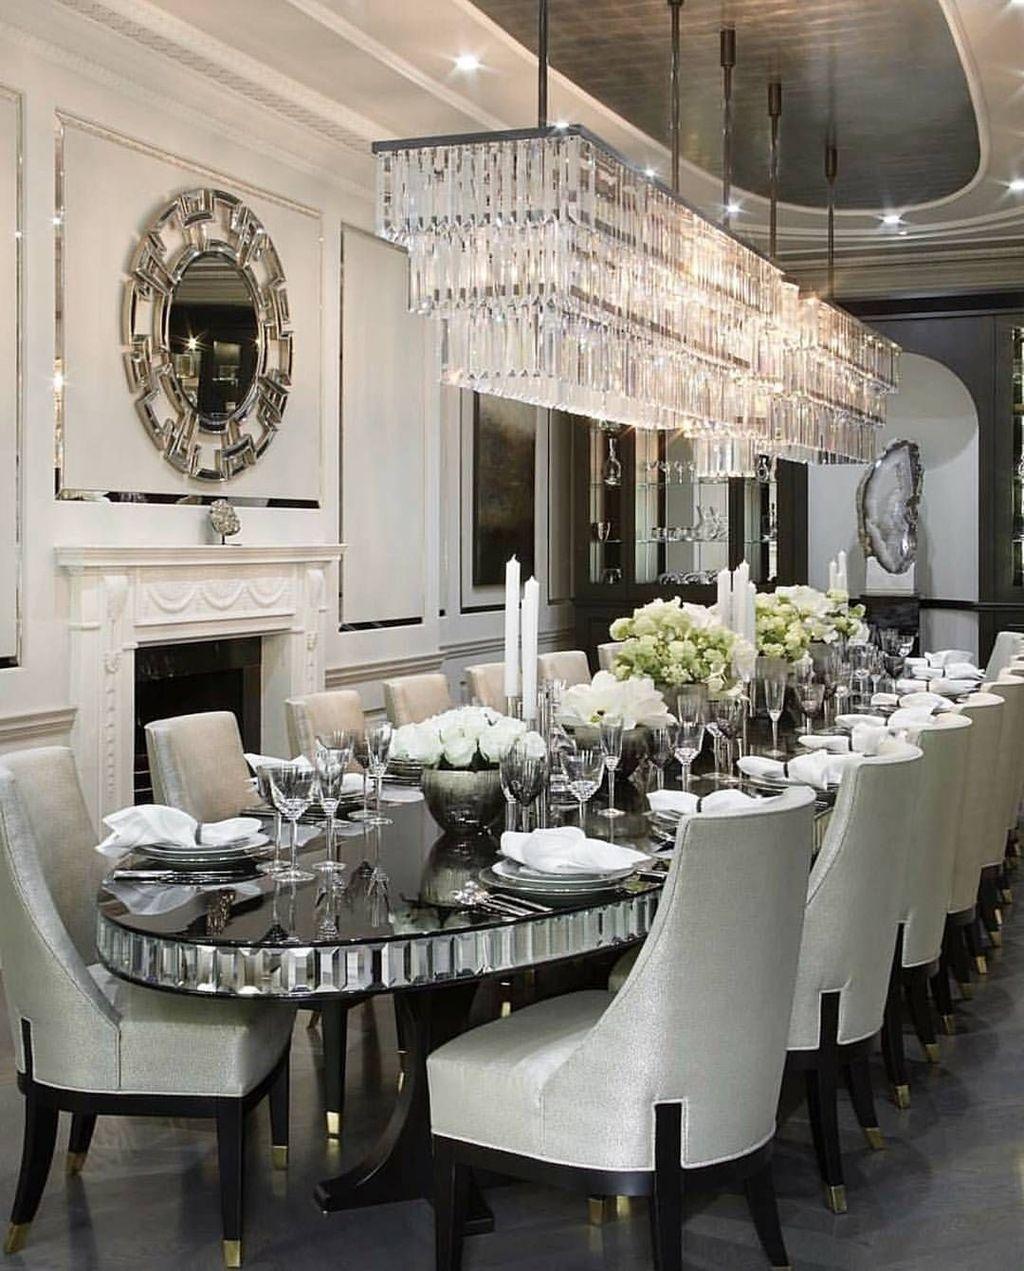 Spectacular Lighting Design Ideas For Awesome Dining Room34